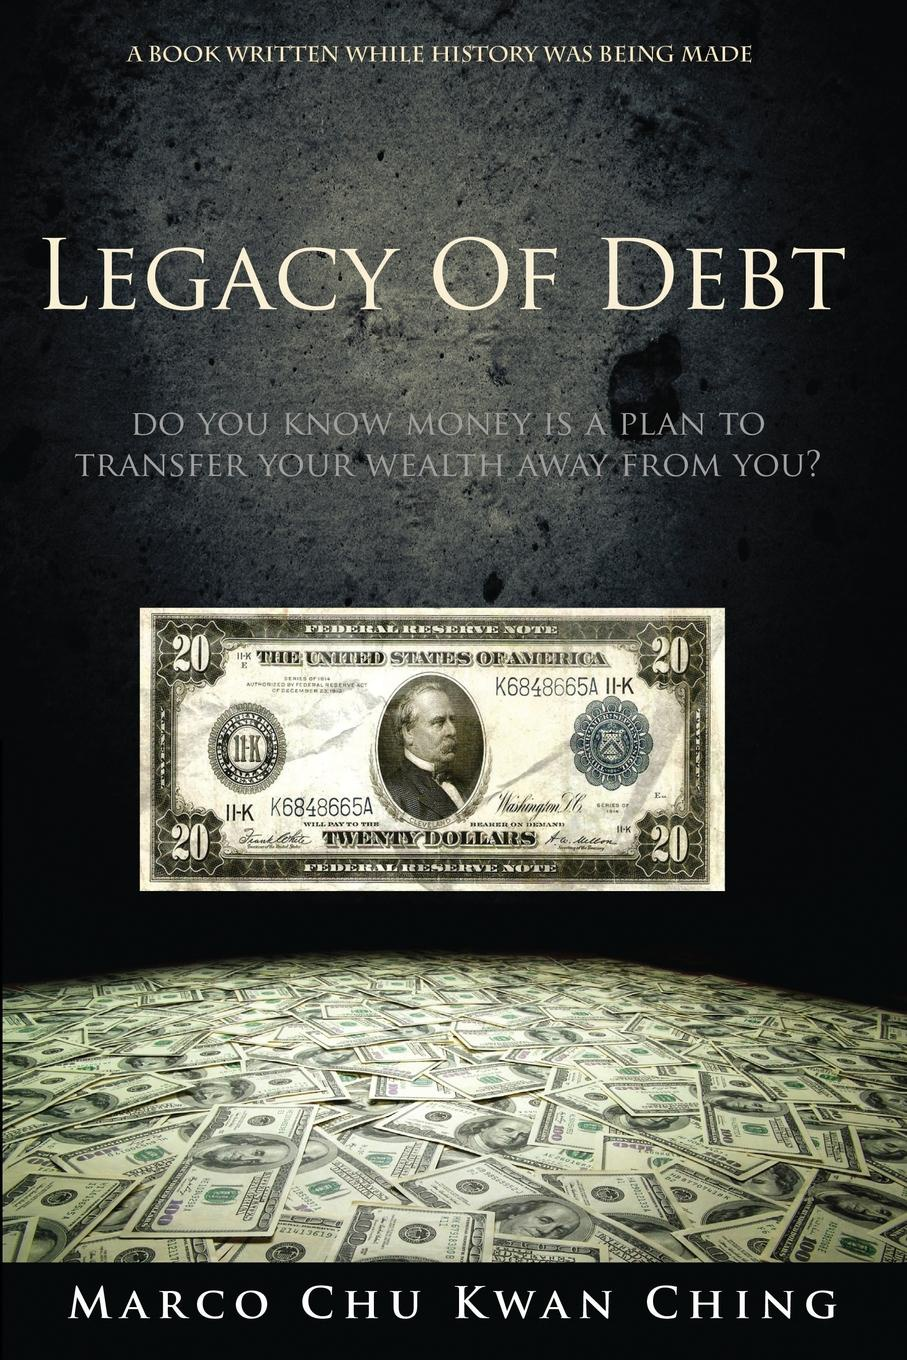 Legacy of Debt. Do You Know Money Is a Plan to Transfer Your Wealth Away from You. Money does not grow on trees. However, the truth is that our modern...